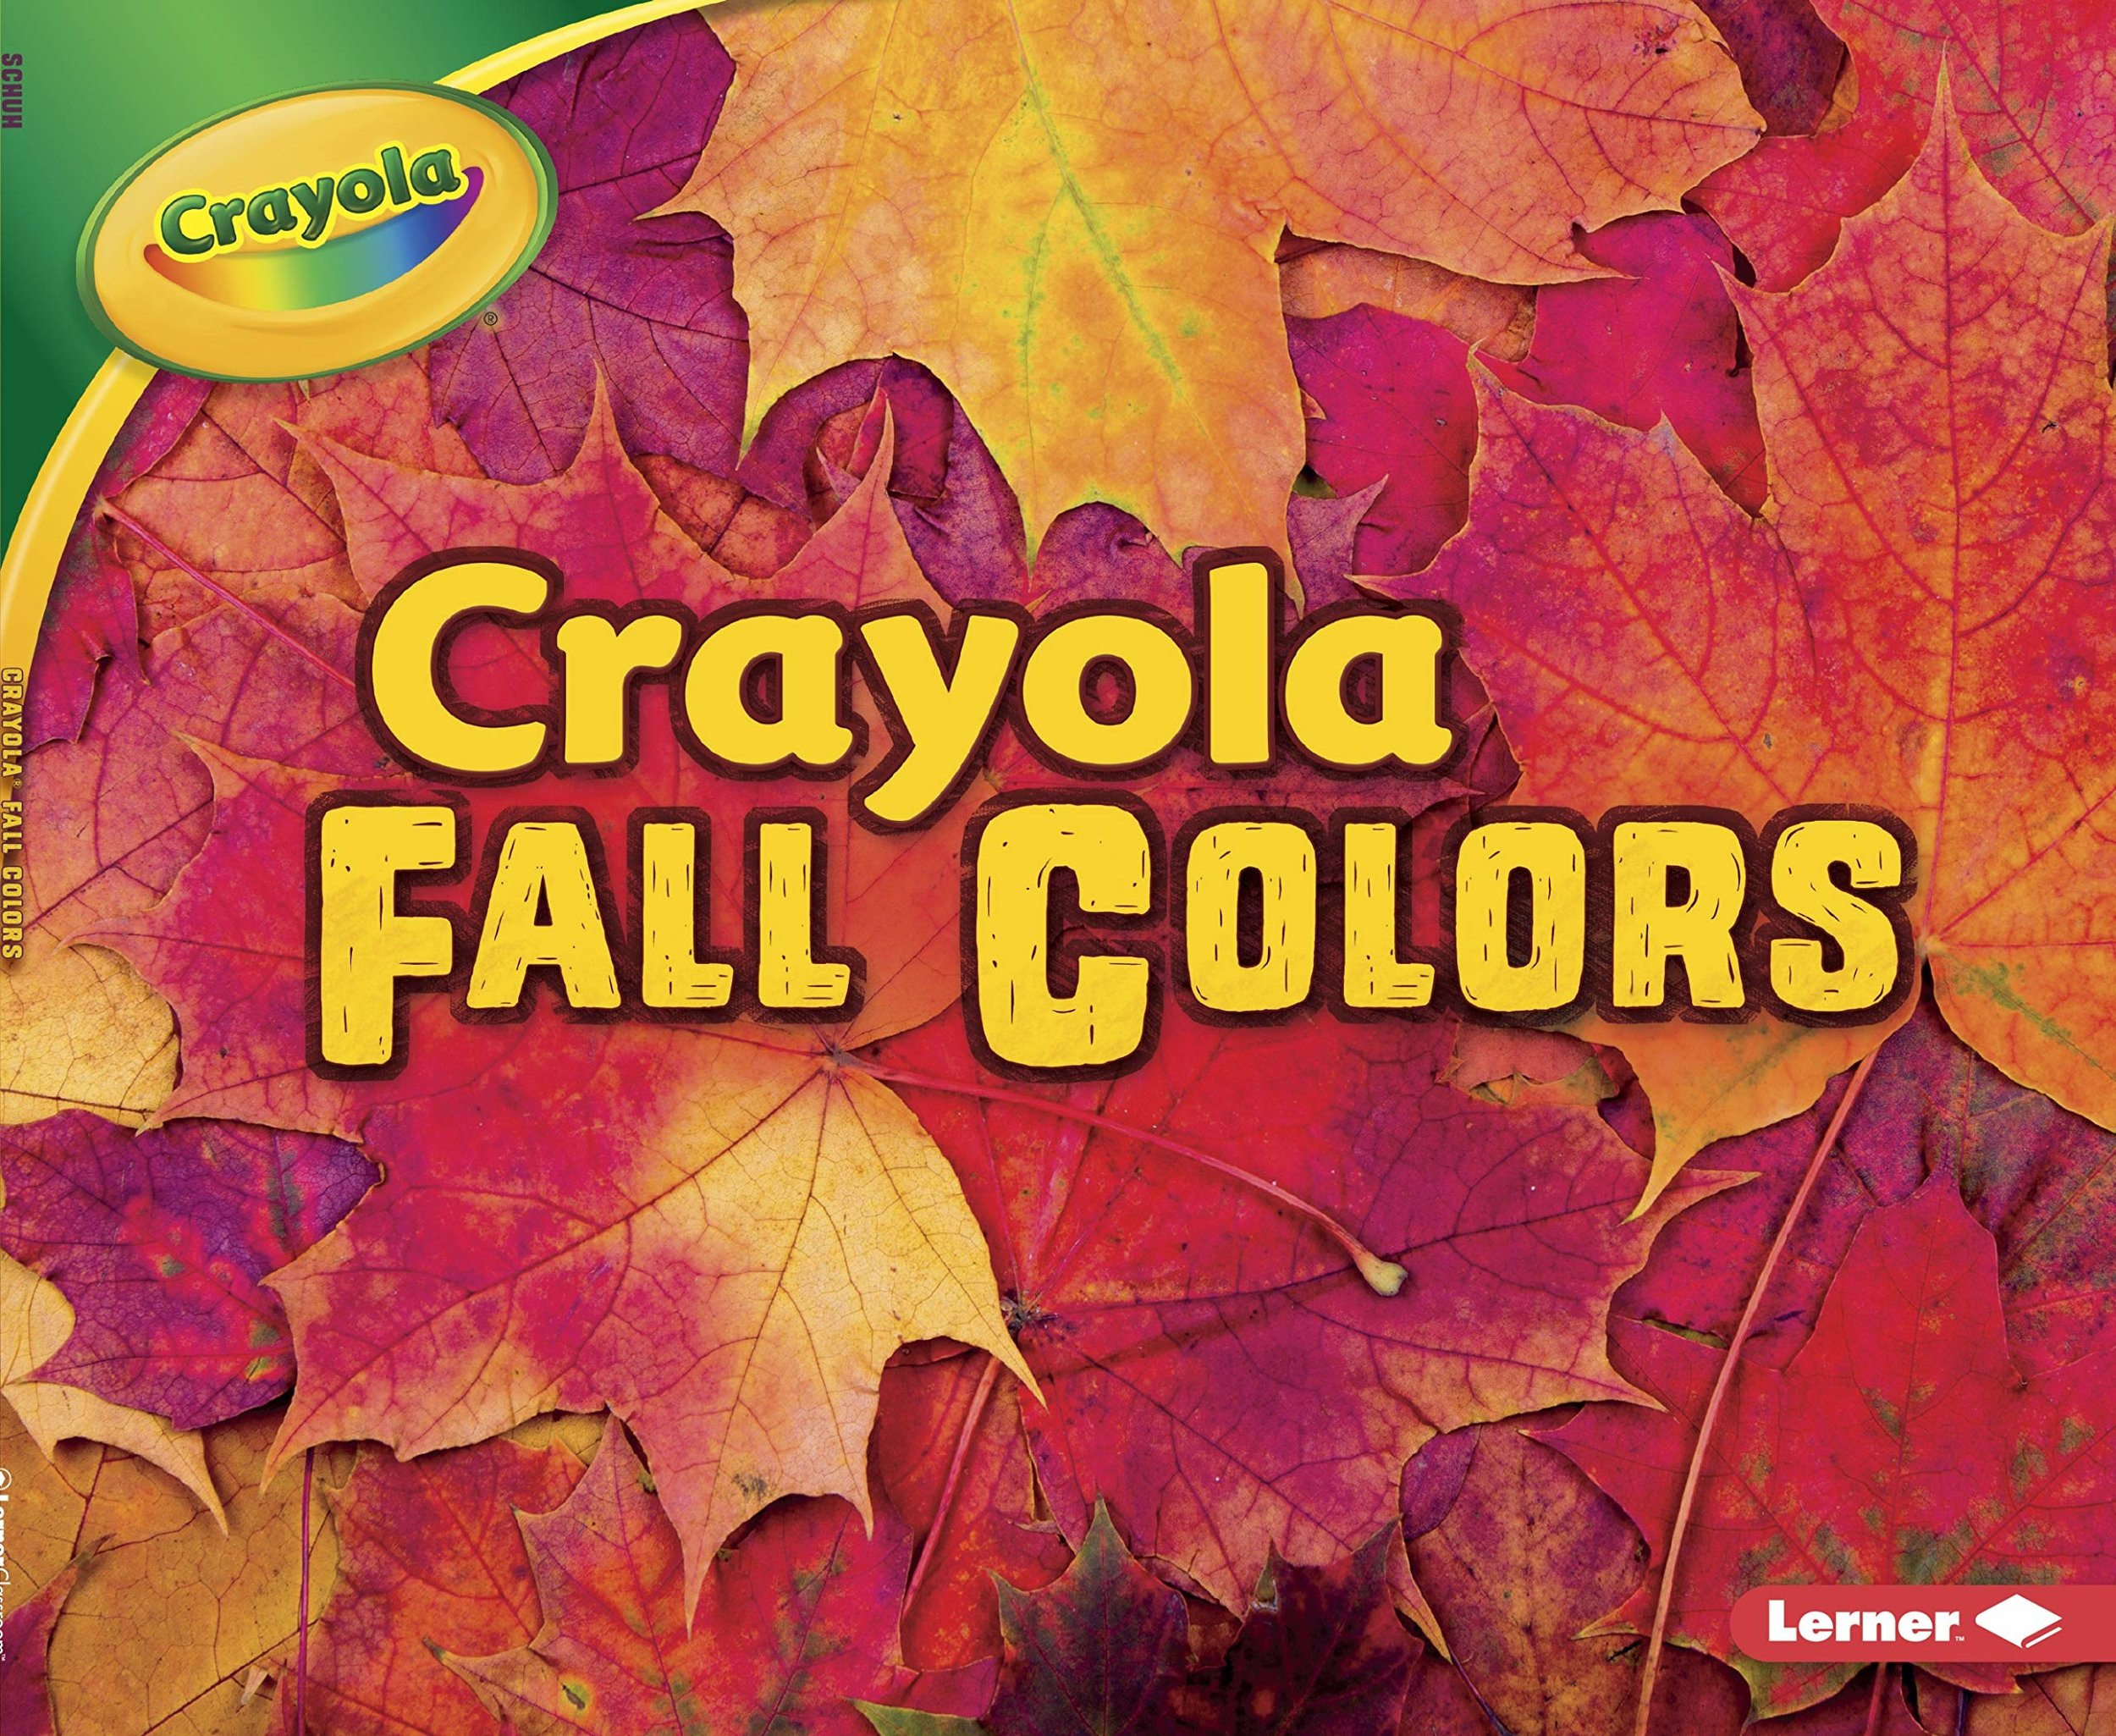 Crayola Fall Colors.jpg